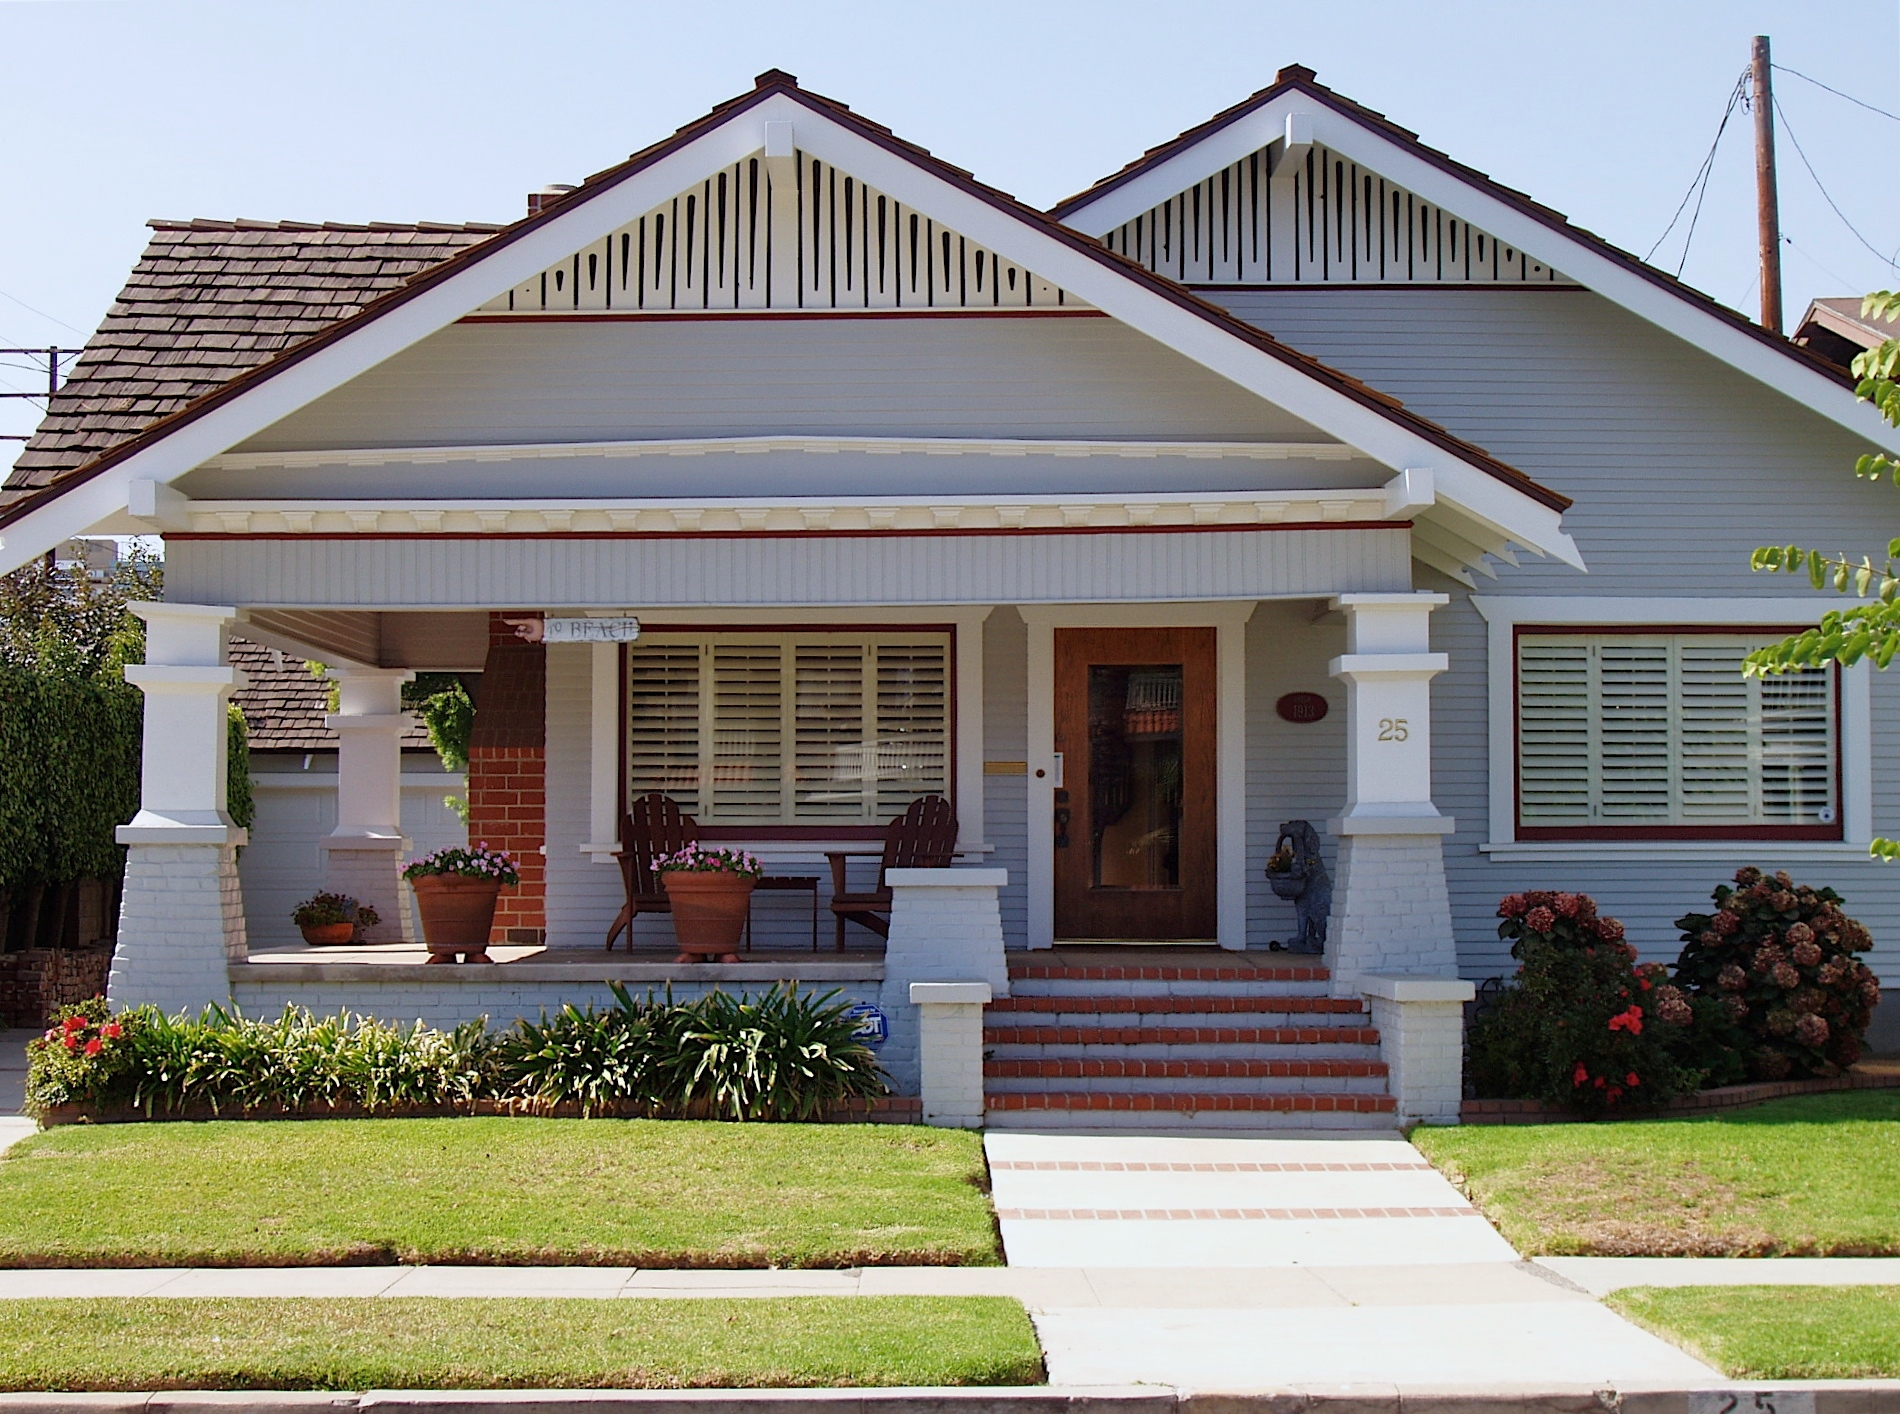 California Bungalow